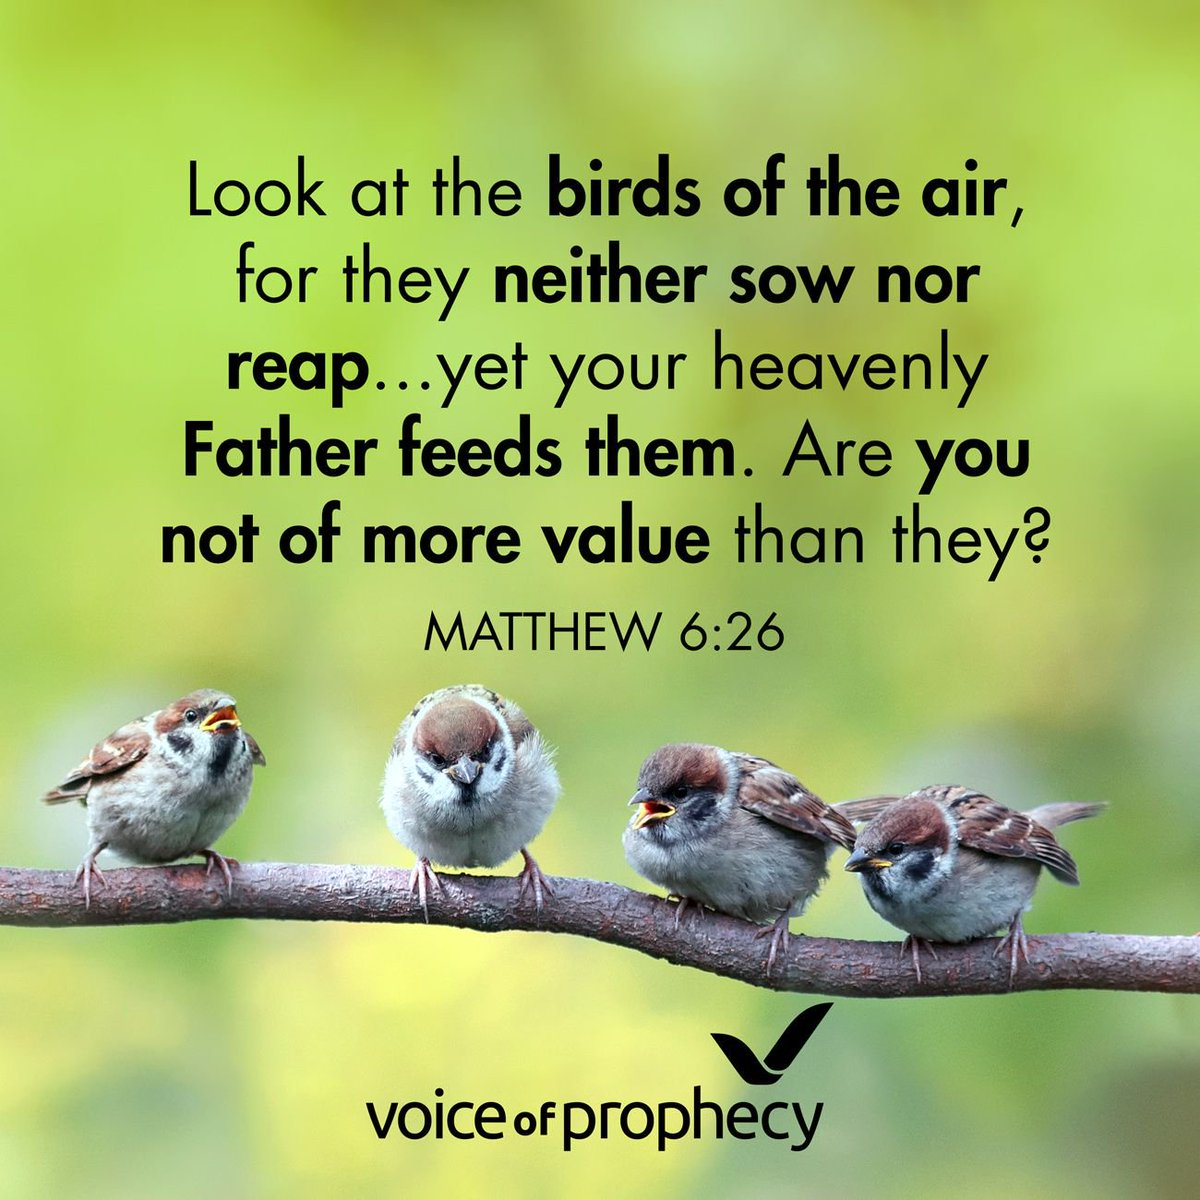 Voice Of Prophecy On Twitter Bible Bibleverse Voiceofprophecy